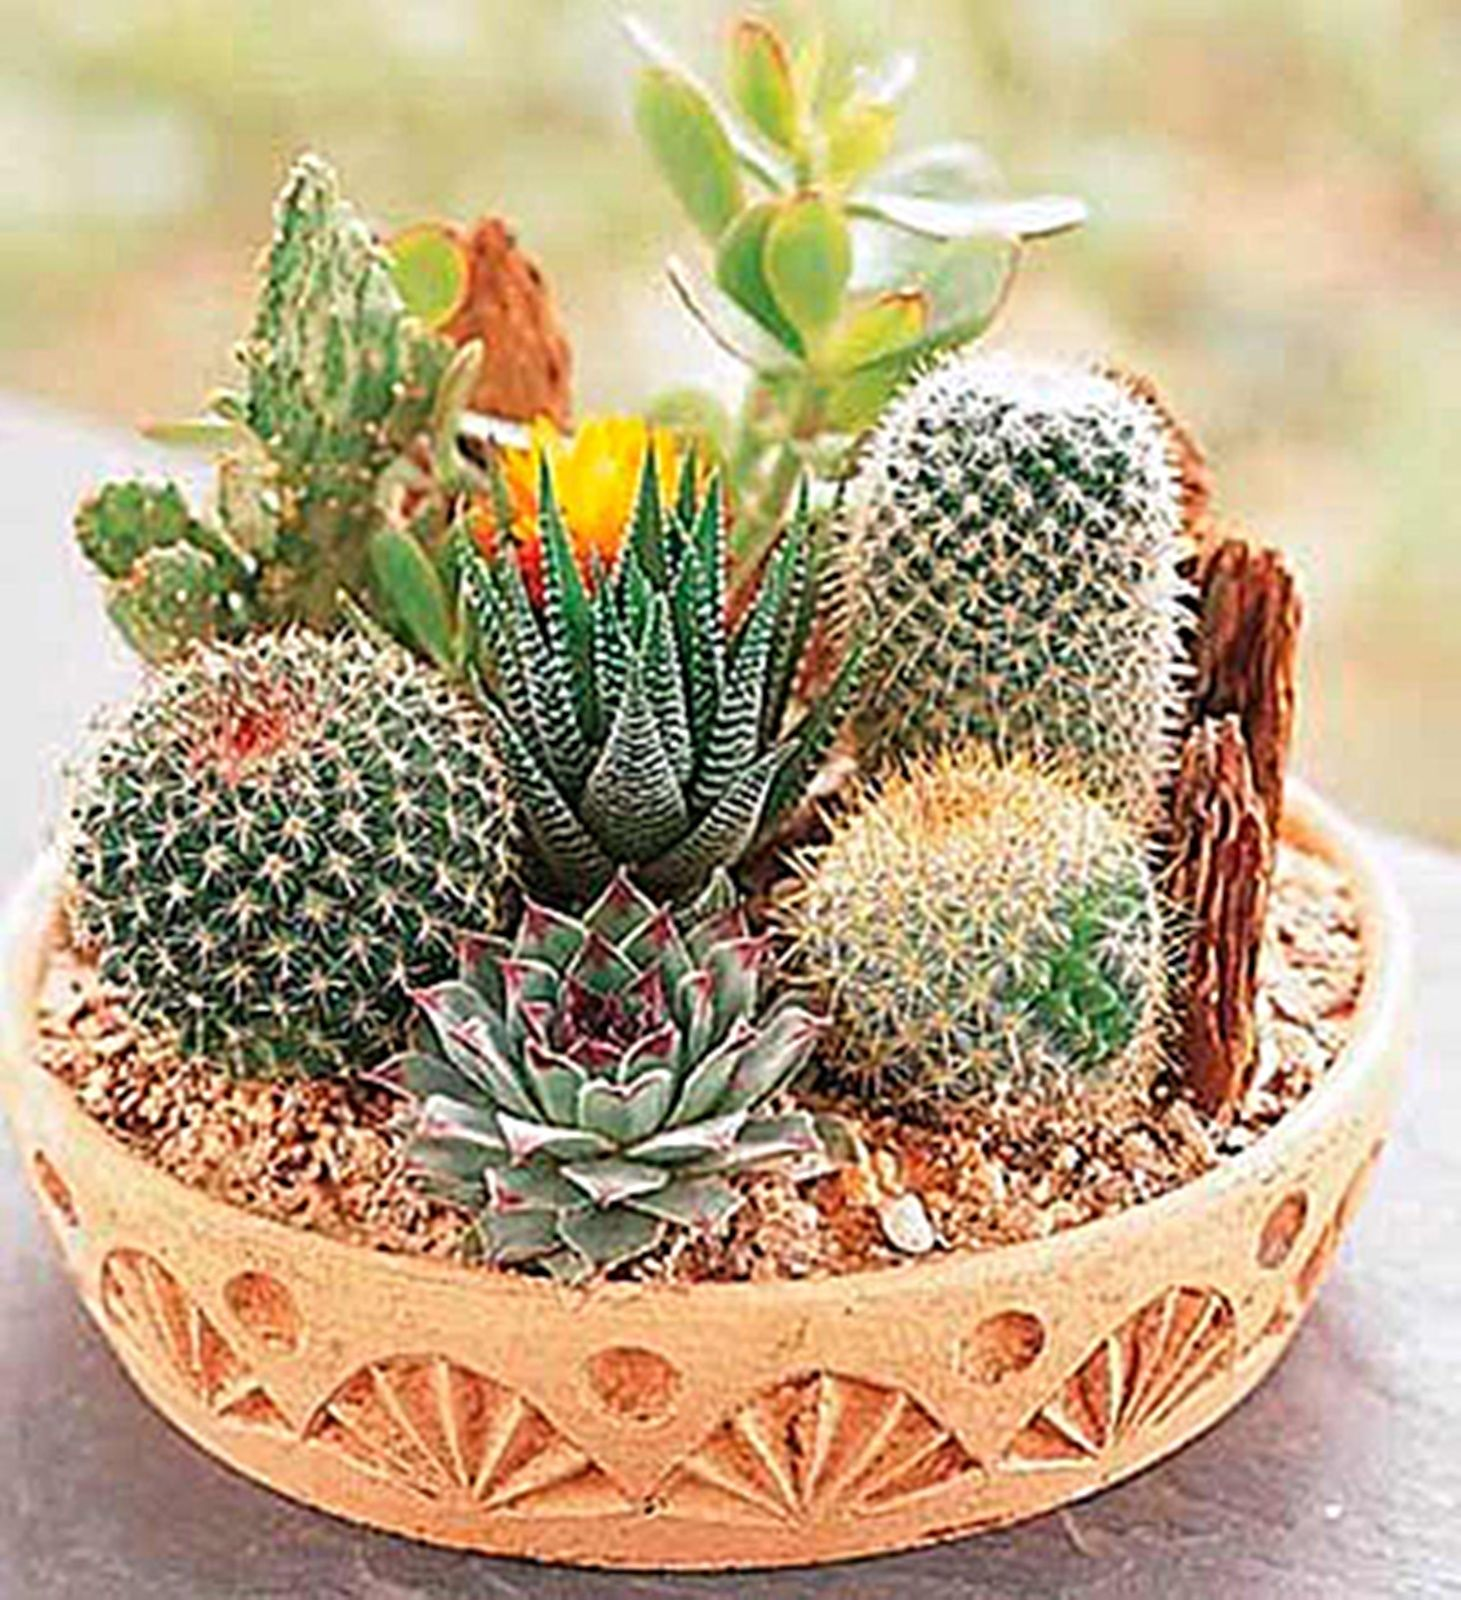 new 60 piece Cactus Seeds Mix Organic Ornamental Seed unusual succulents, can purify the air and prevent radiation(China (Mainland))